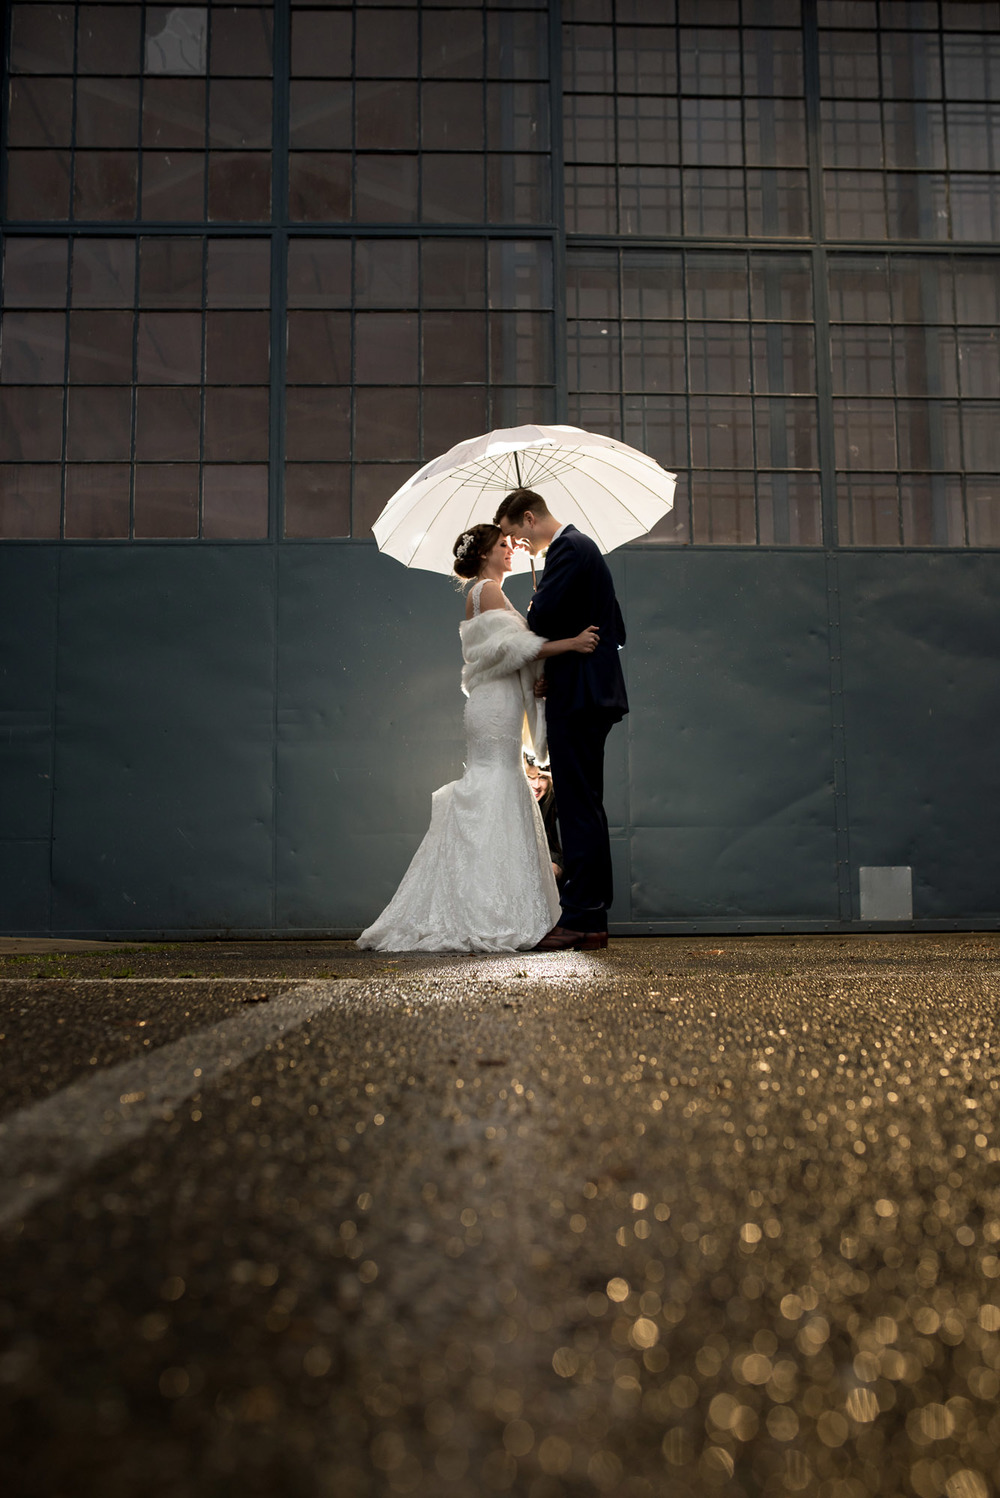 Hangar-30-wedding-Seattle-060.jpg